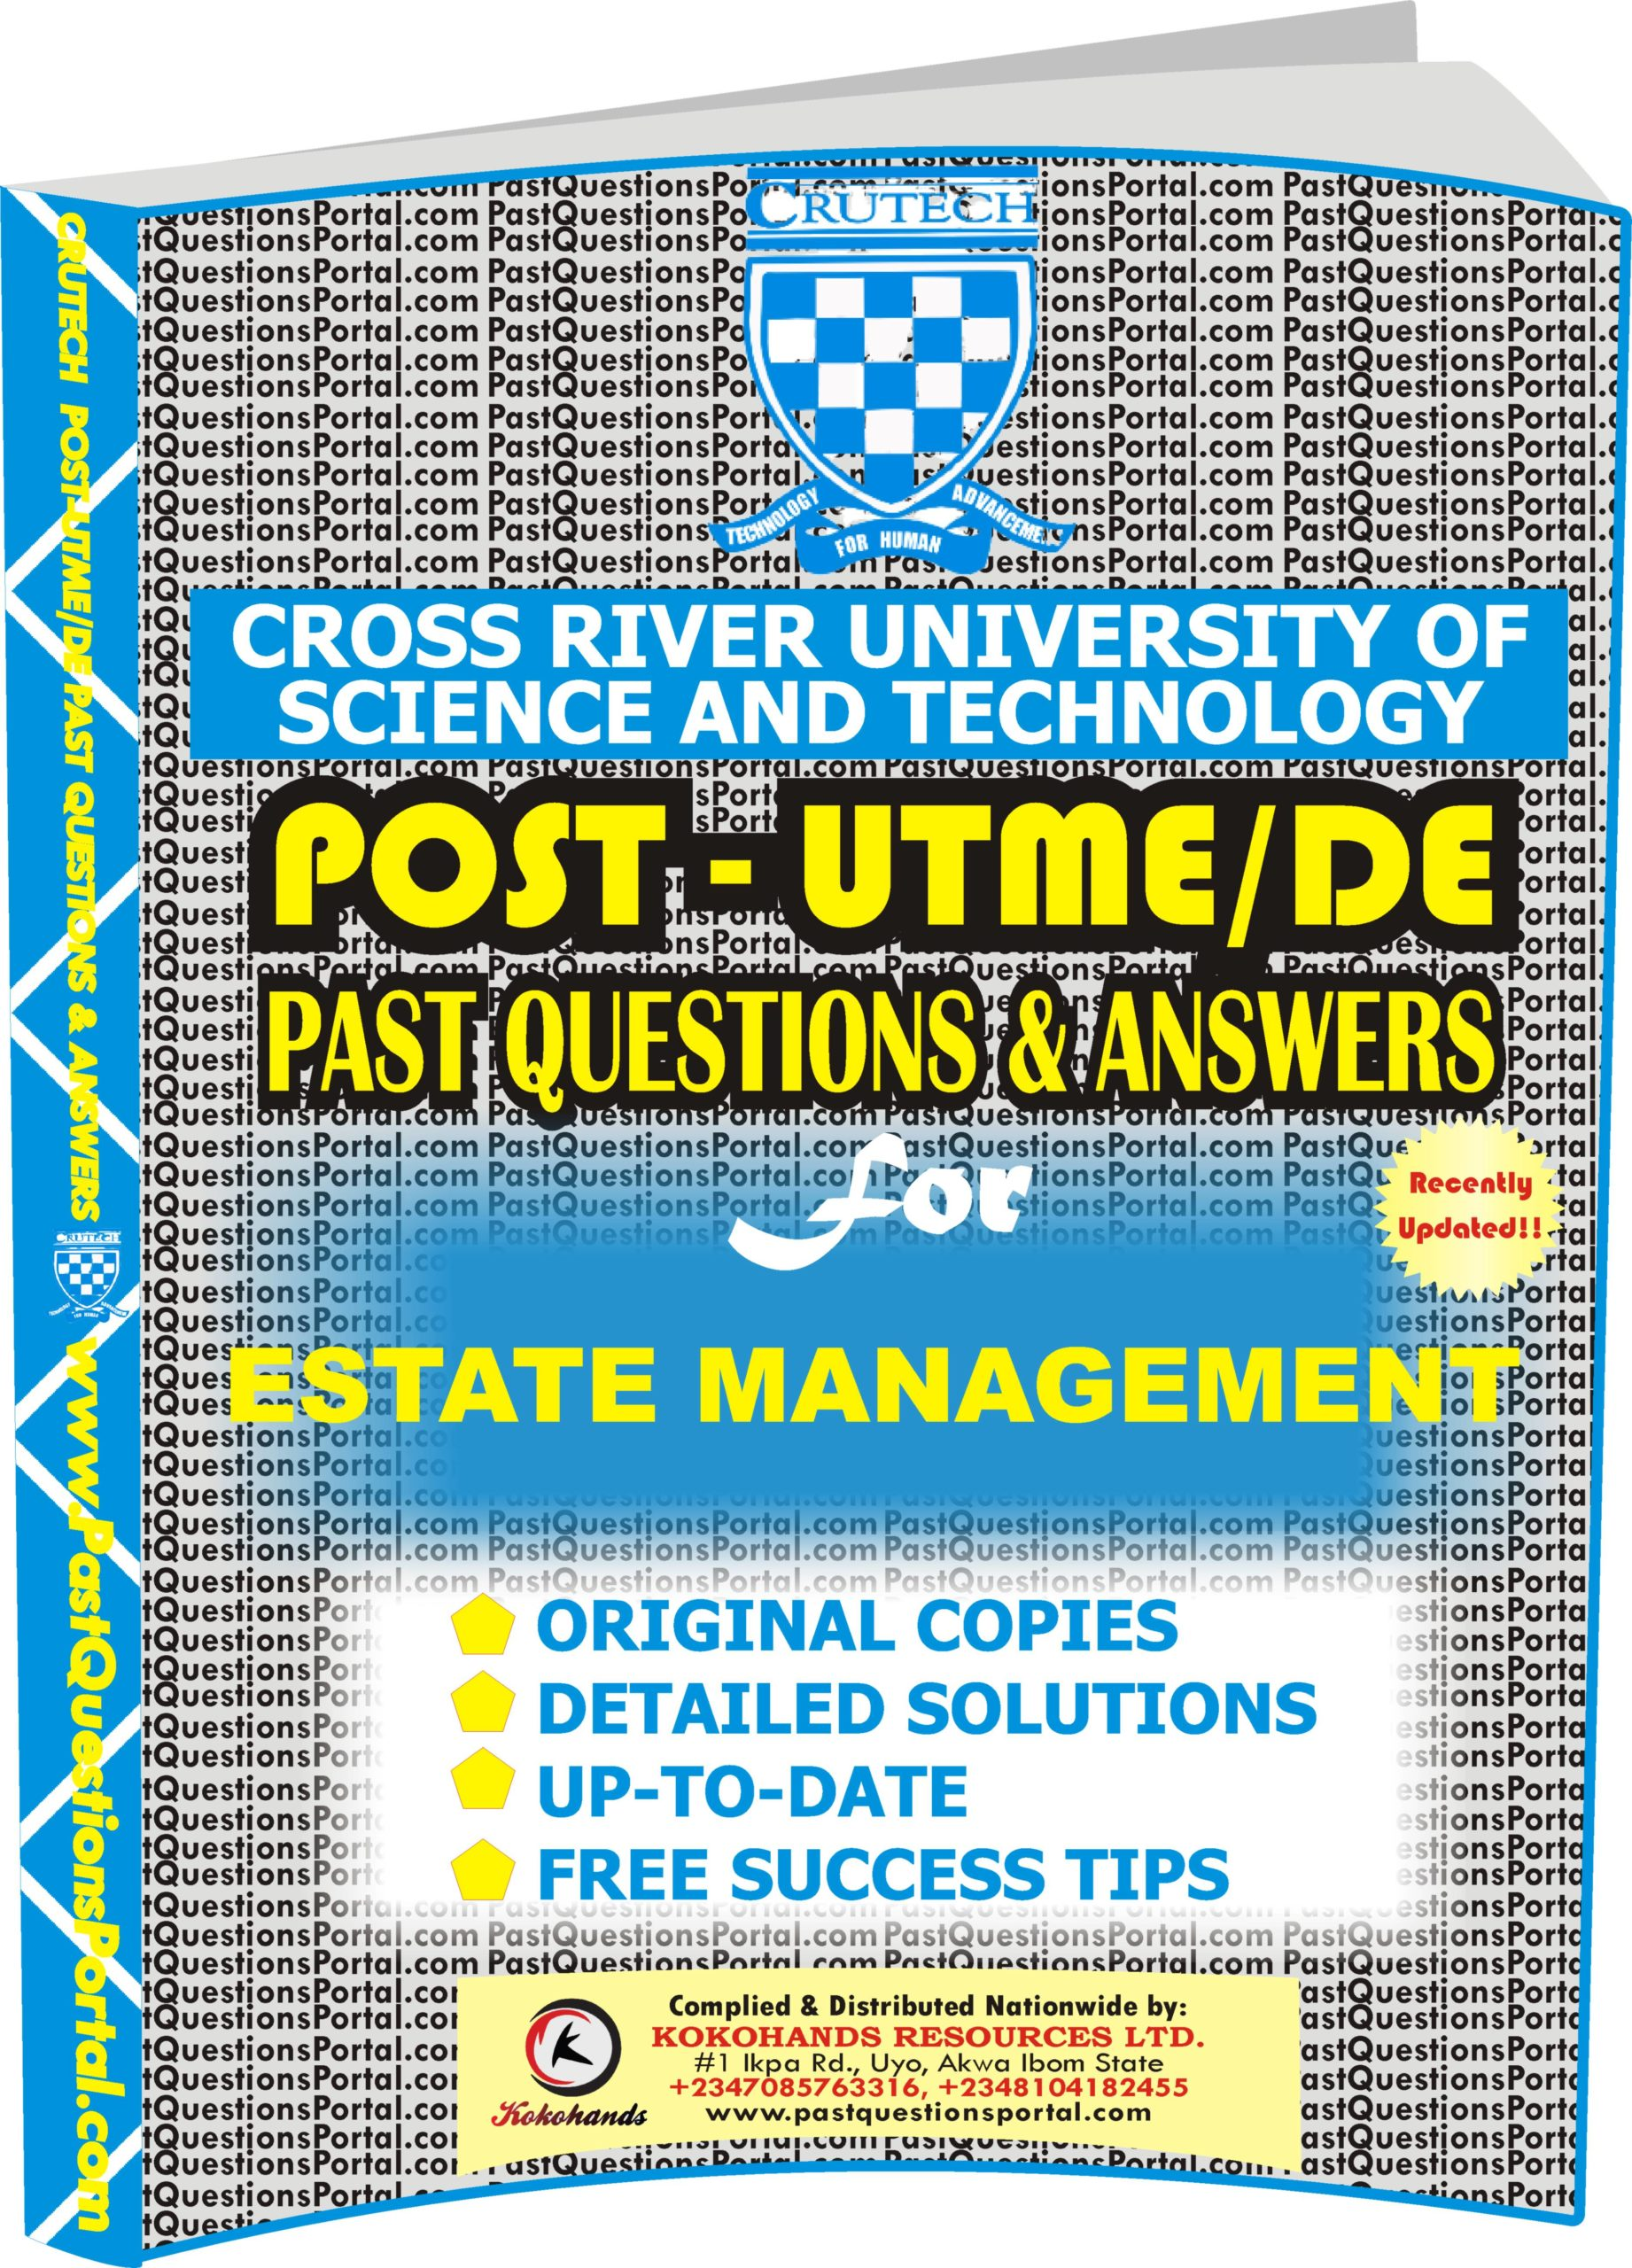 CRUTECH Post UTME Past Questions for ESTATE MANAGEMENT